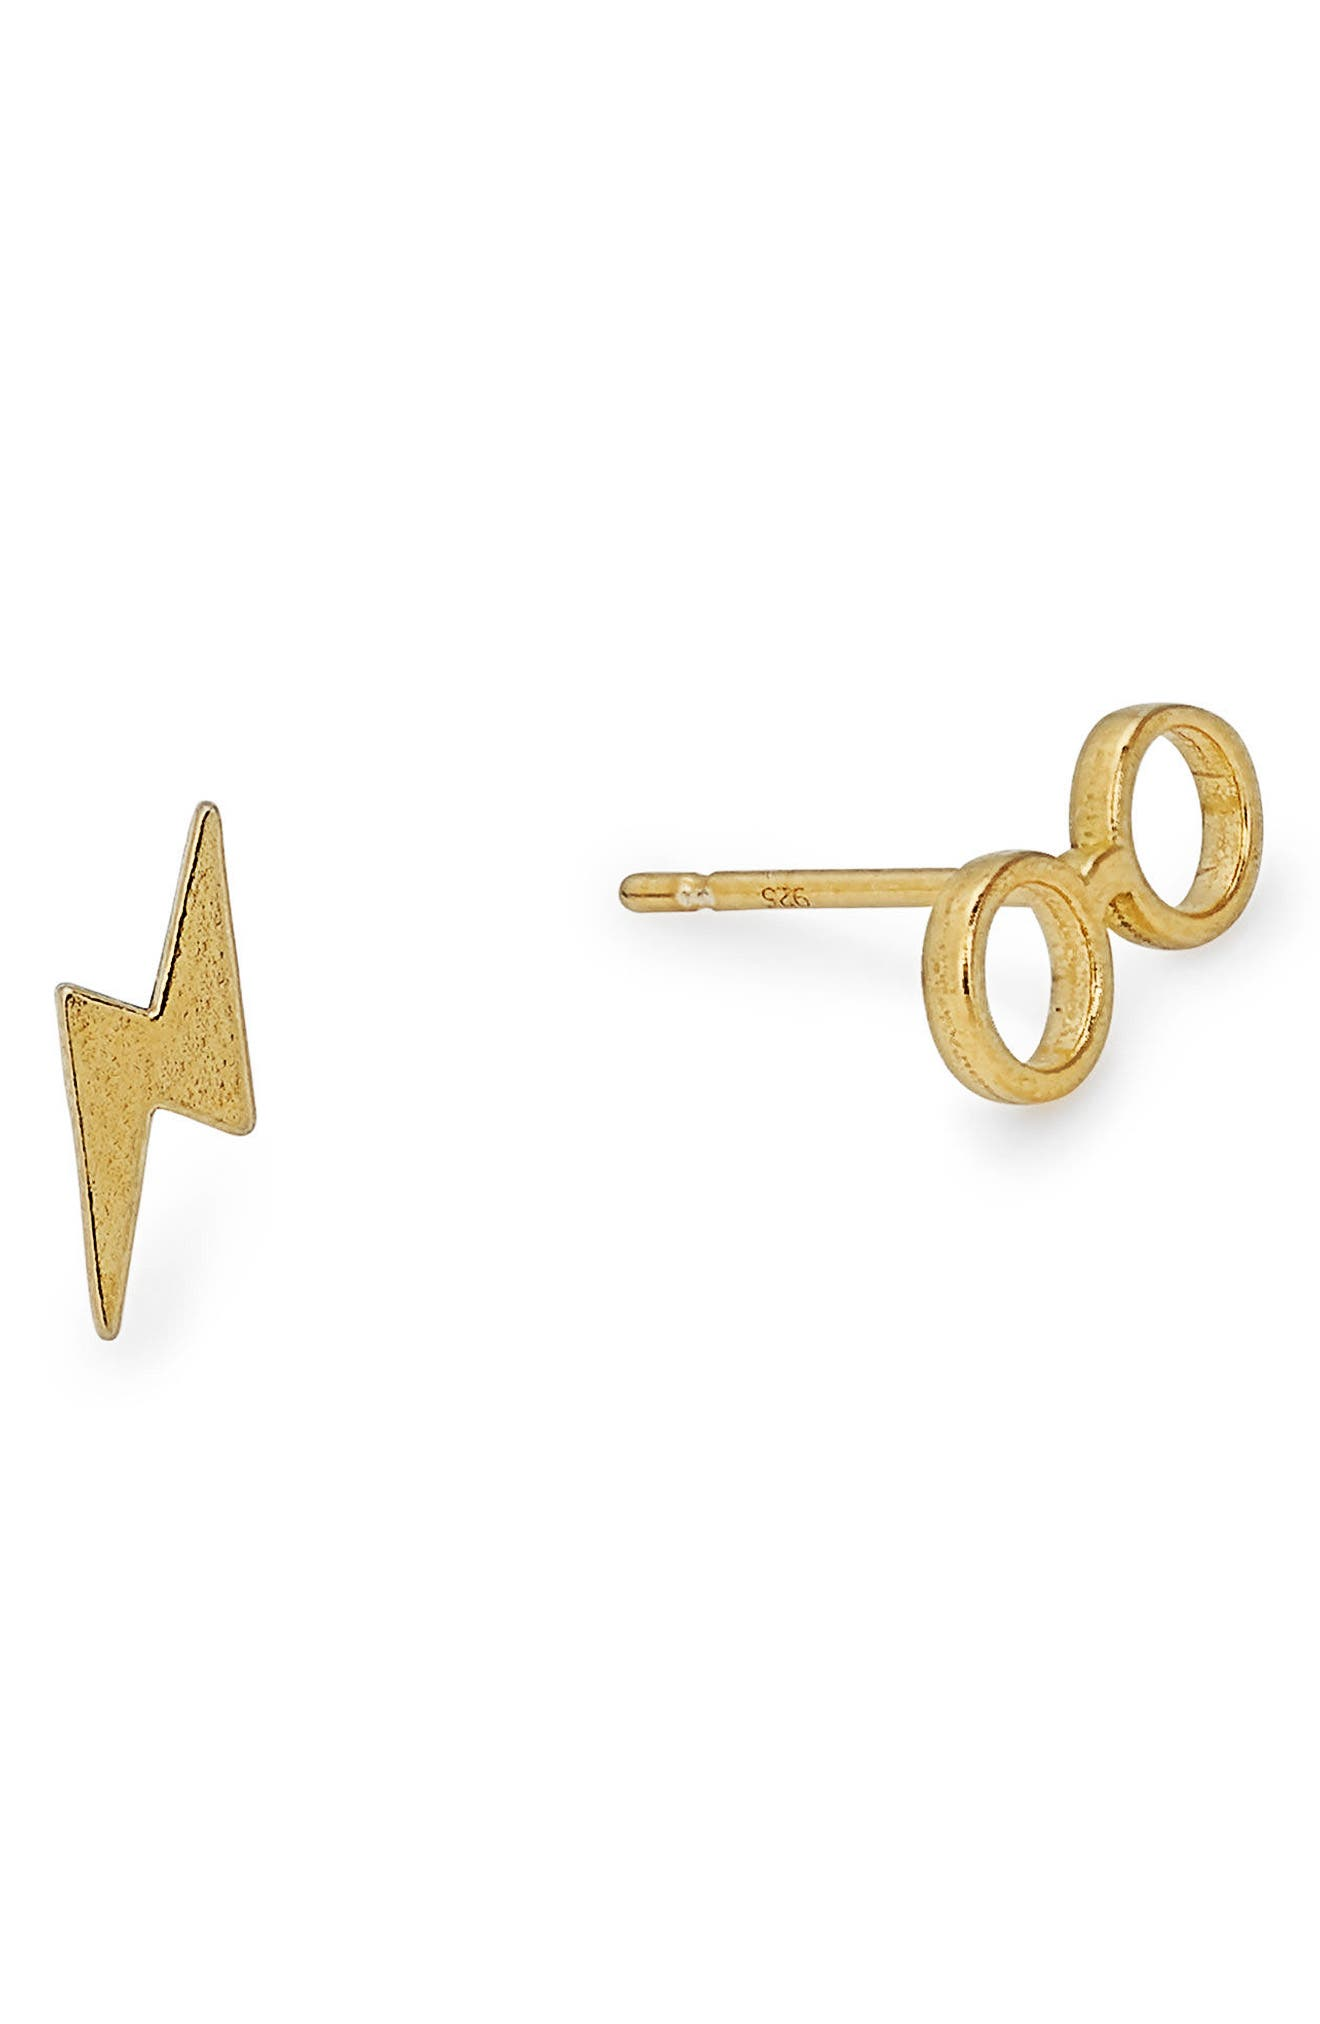 Harry Potter<sup>™</sup> Glasses & Bolt Stud Earrings,                         Main,                         color, Gold